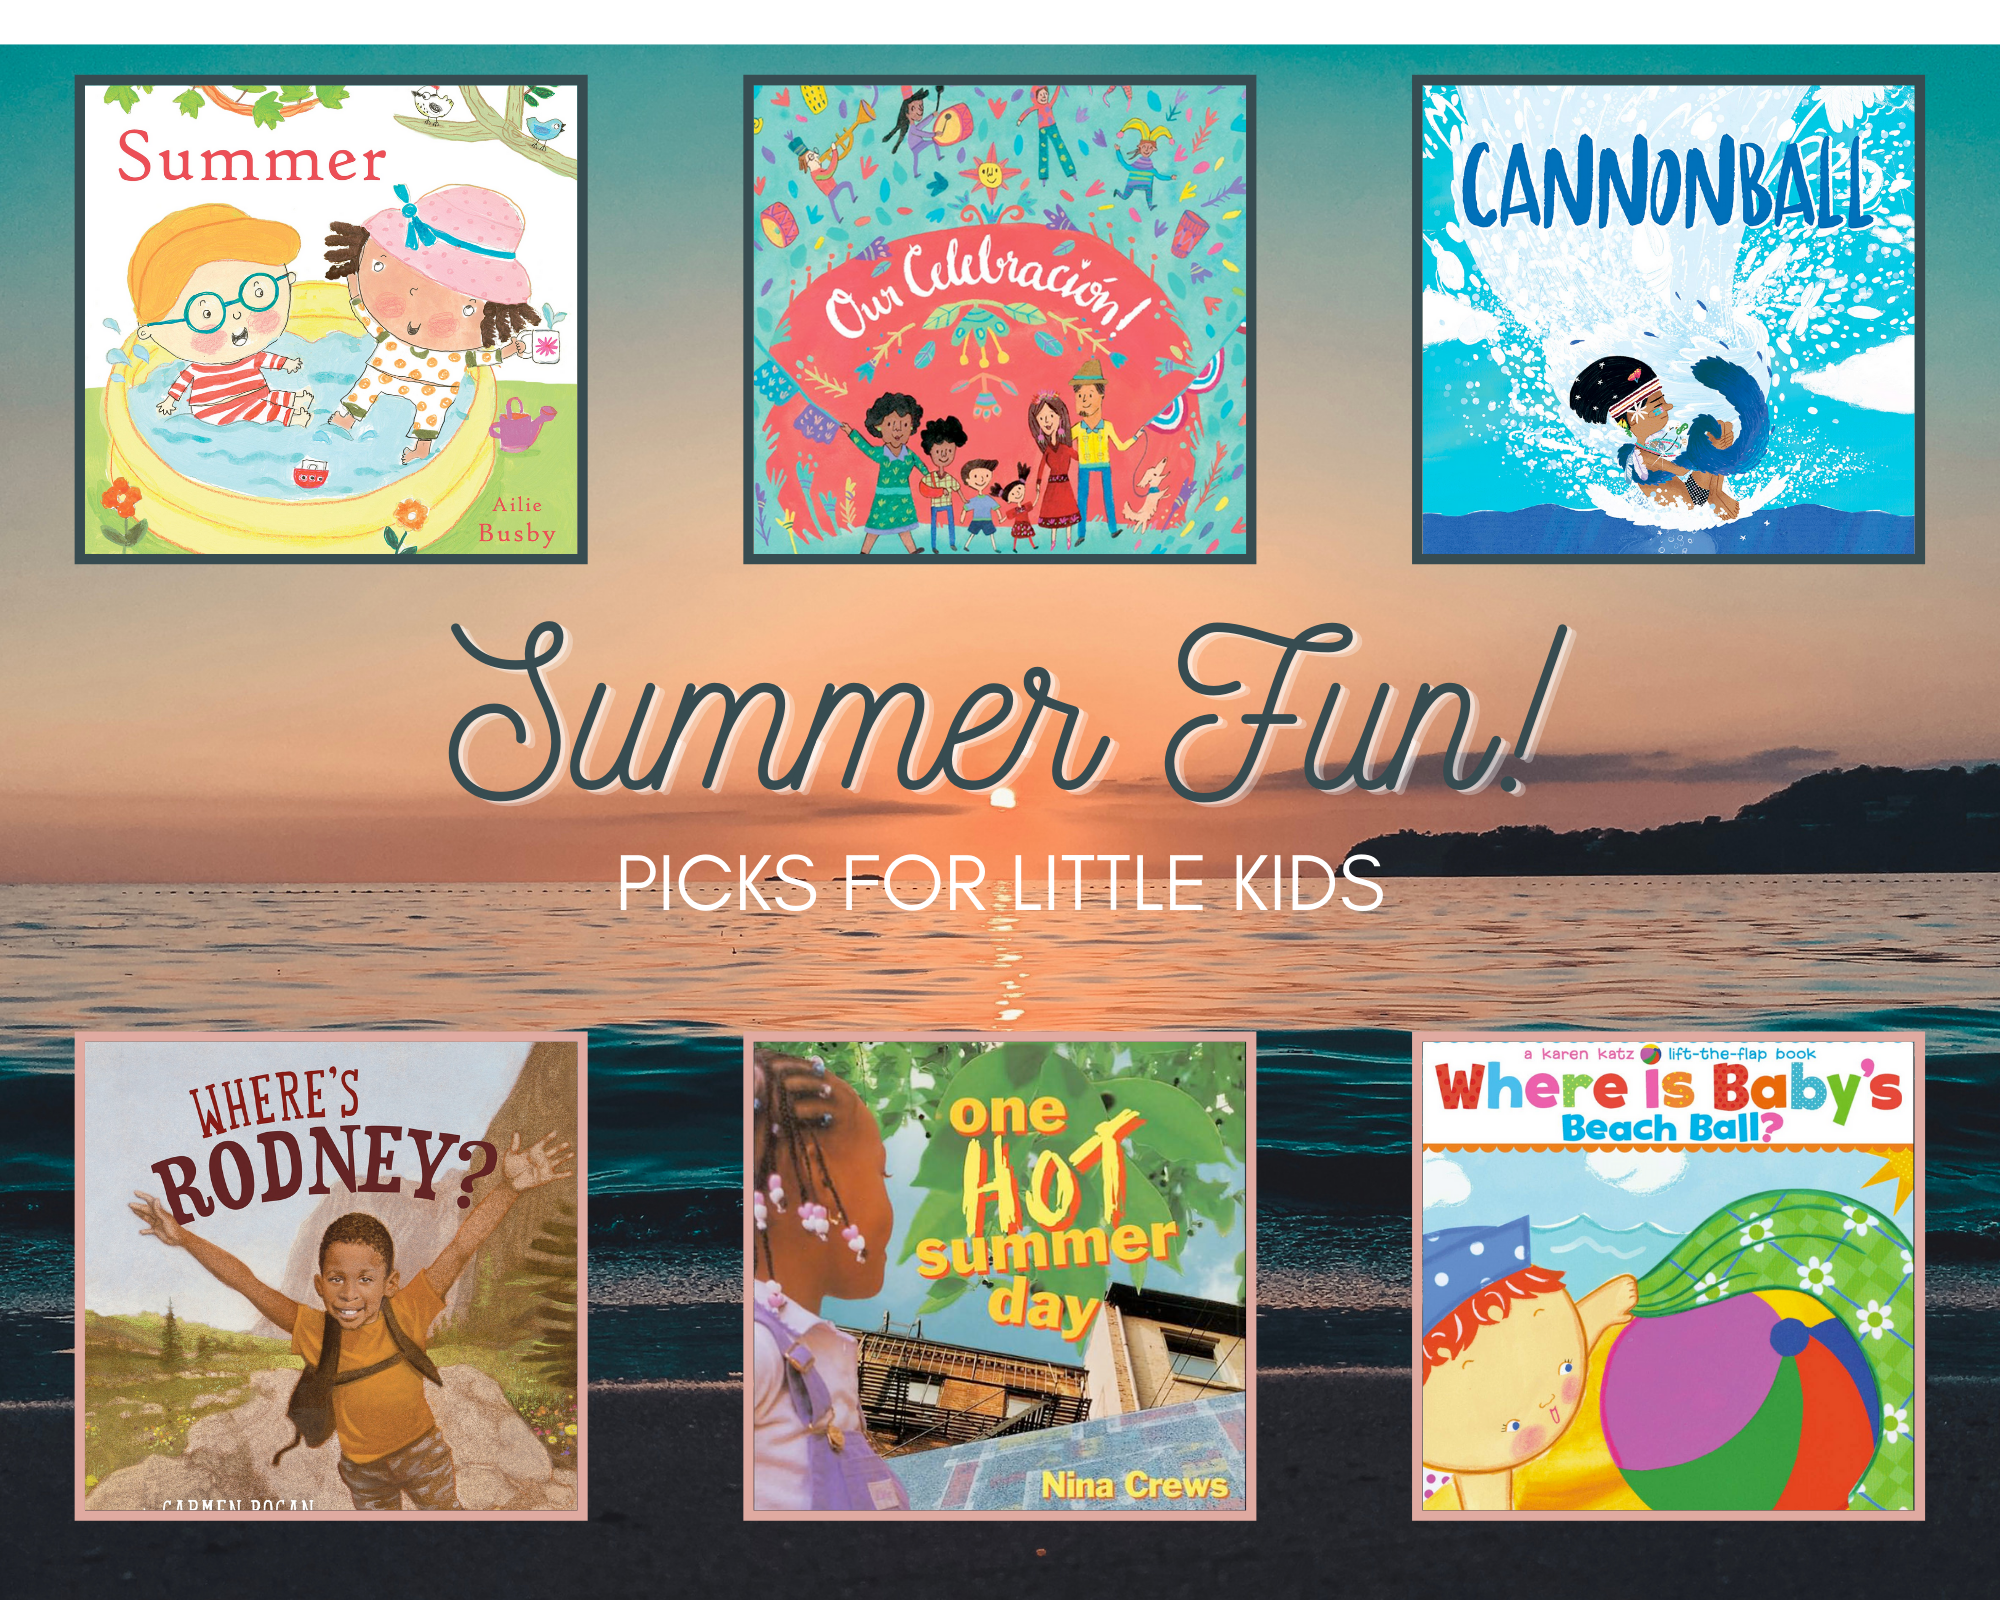 Summer by Ailie Busby Our Celebración! by Susan Middleton Elya Cannonball by Sacha Cotter Where Is Baby's Beach Ball? by Karen Katz One Hot Summer Day by Nina Crews Where's Rodney? by Carmen Bogan